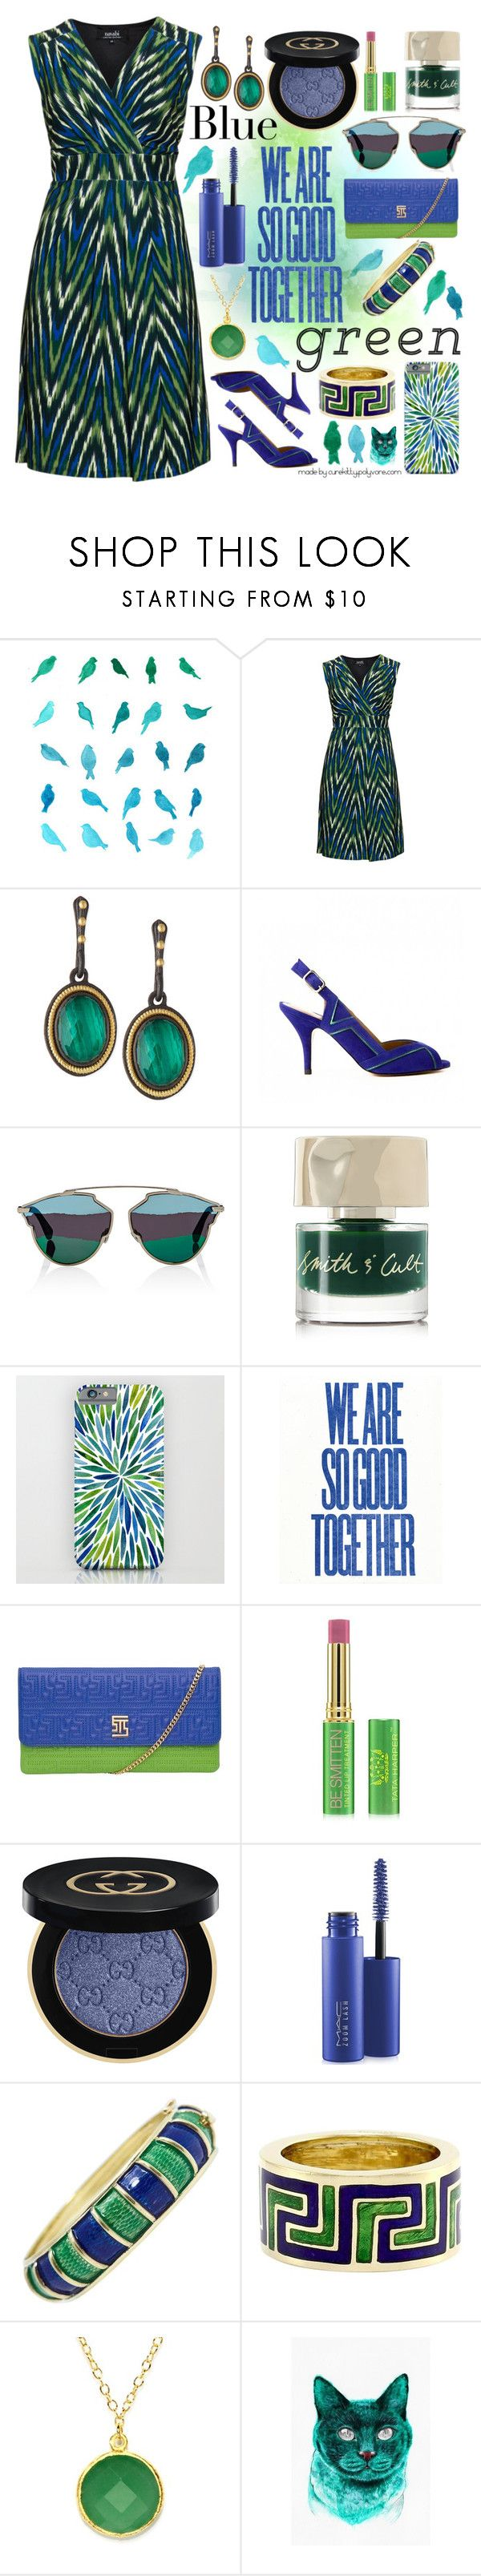 """""""We Are So Good Together: Blue & Green!"""" by curekitty ❤ liked on Polyvore featuring navabi, Armenta, Christian Dior, Smith & Cult, Tata Harper, Gucci, MAC Cosmetics, Cellino, Tiffany & Co. and BillyTheTree"""